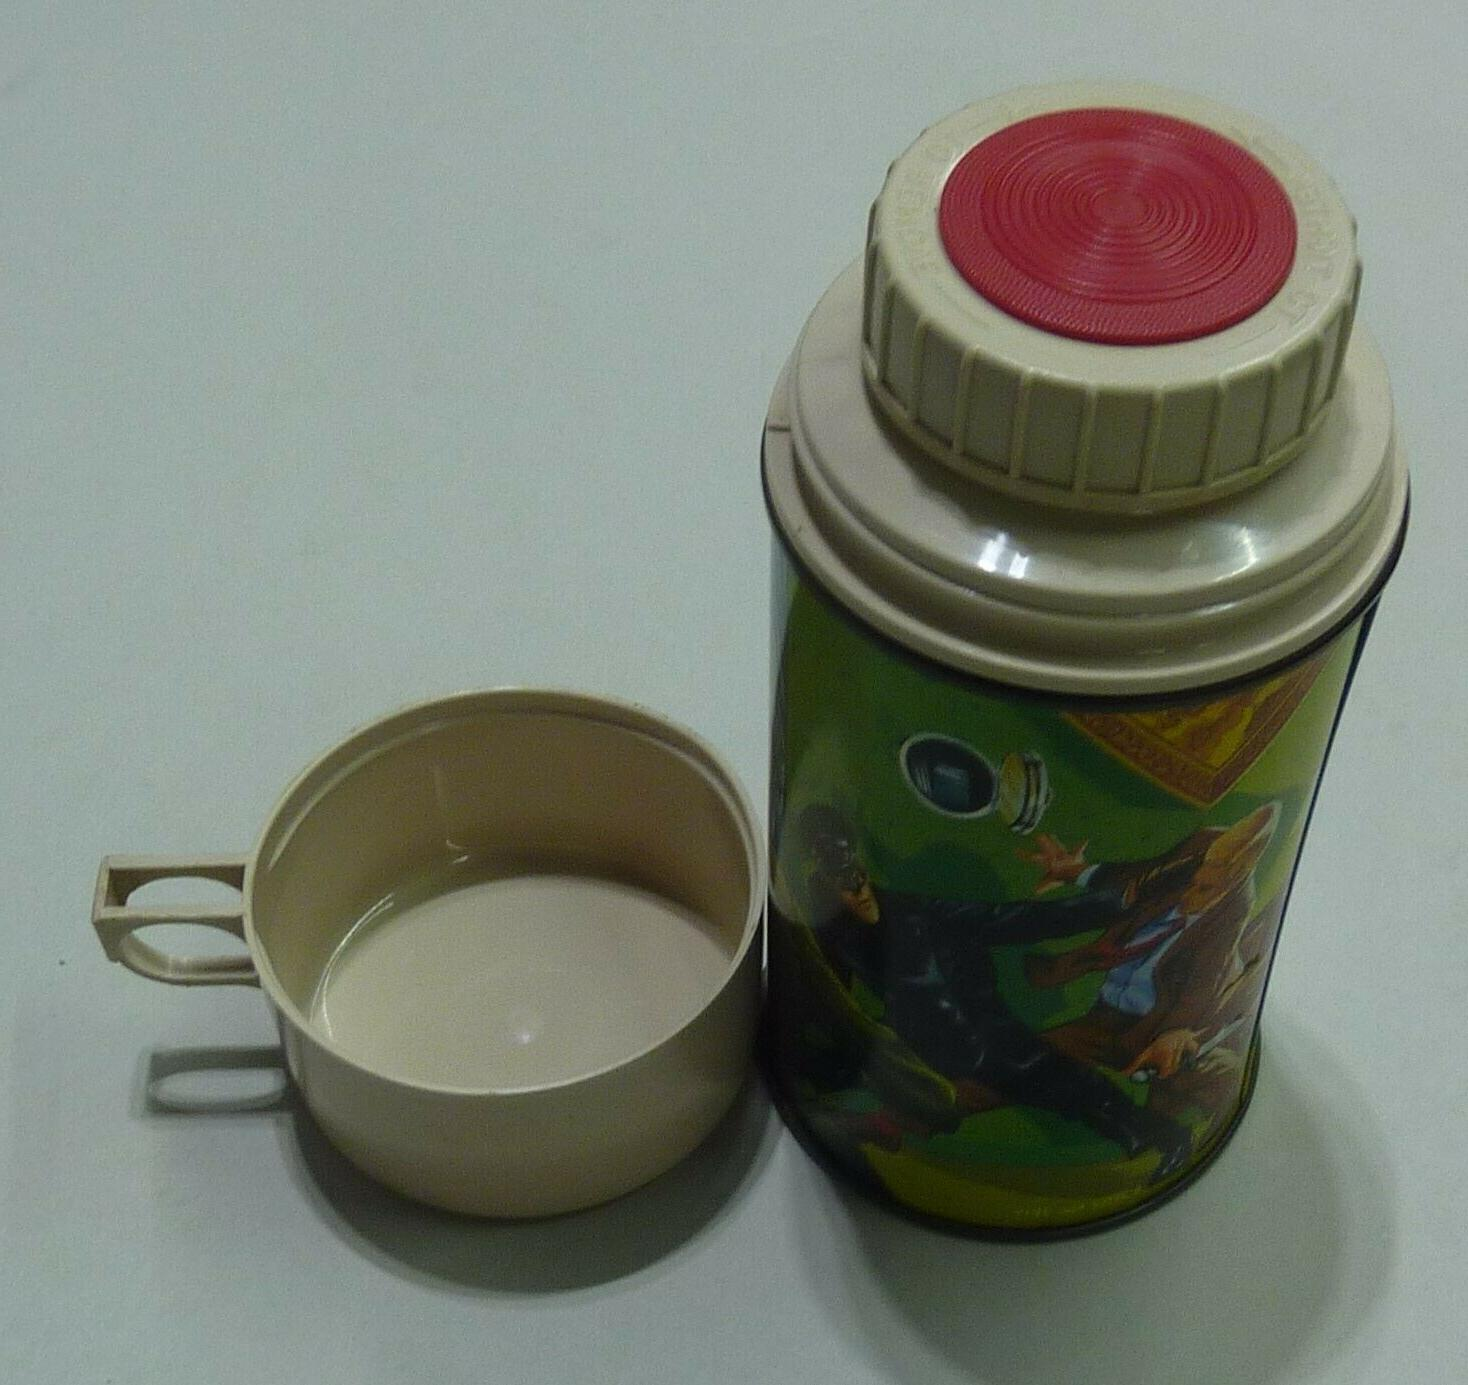 VINTAGE 1967 THE HORNET LUNCH THERMOS - GREAT CONDITION